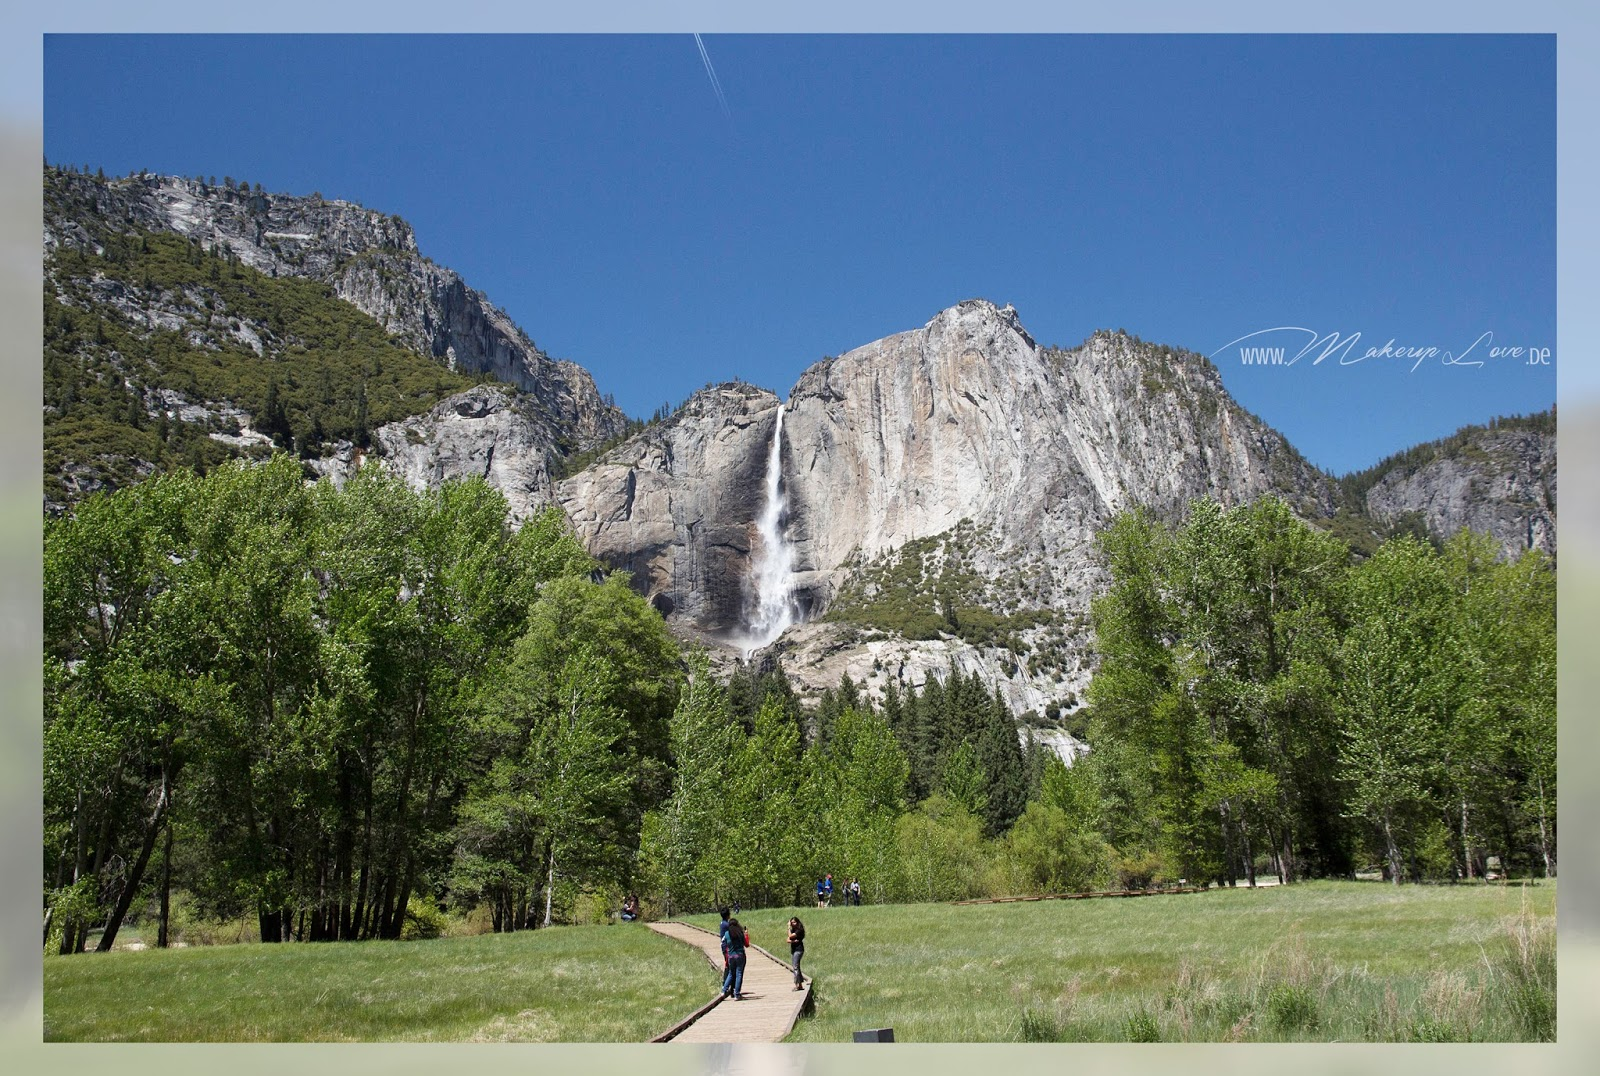 Yosemite National Park Waterfall Wasserfall Landschaft landscape